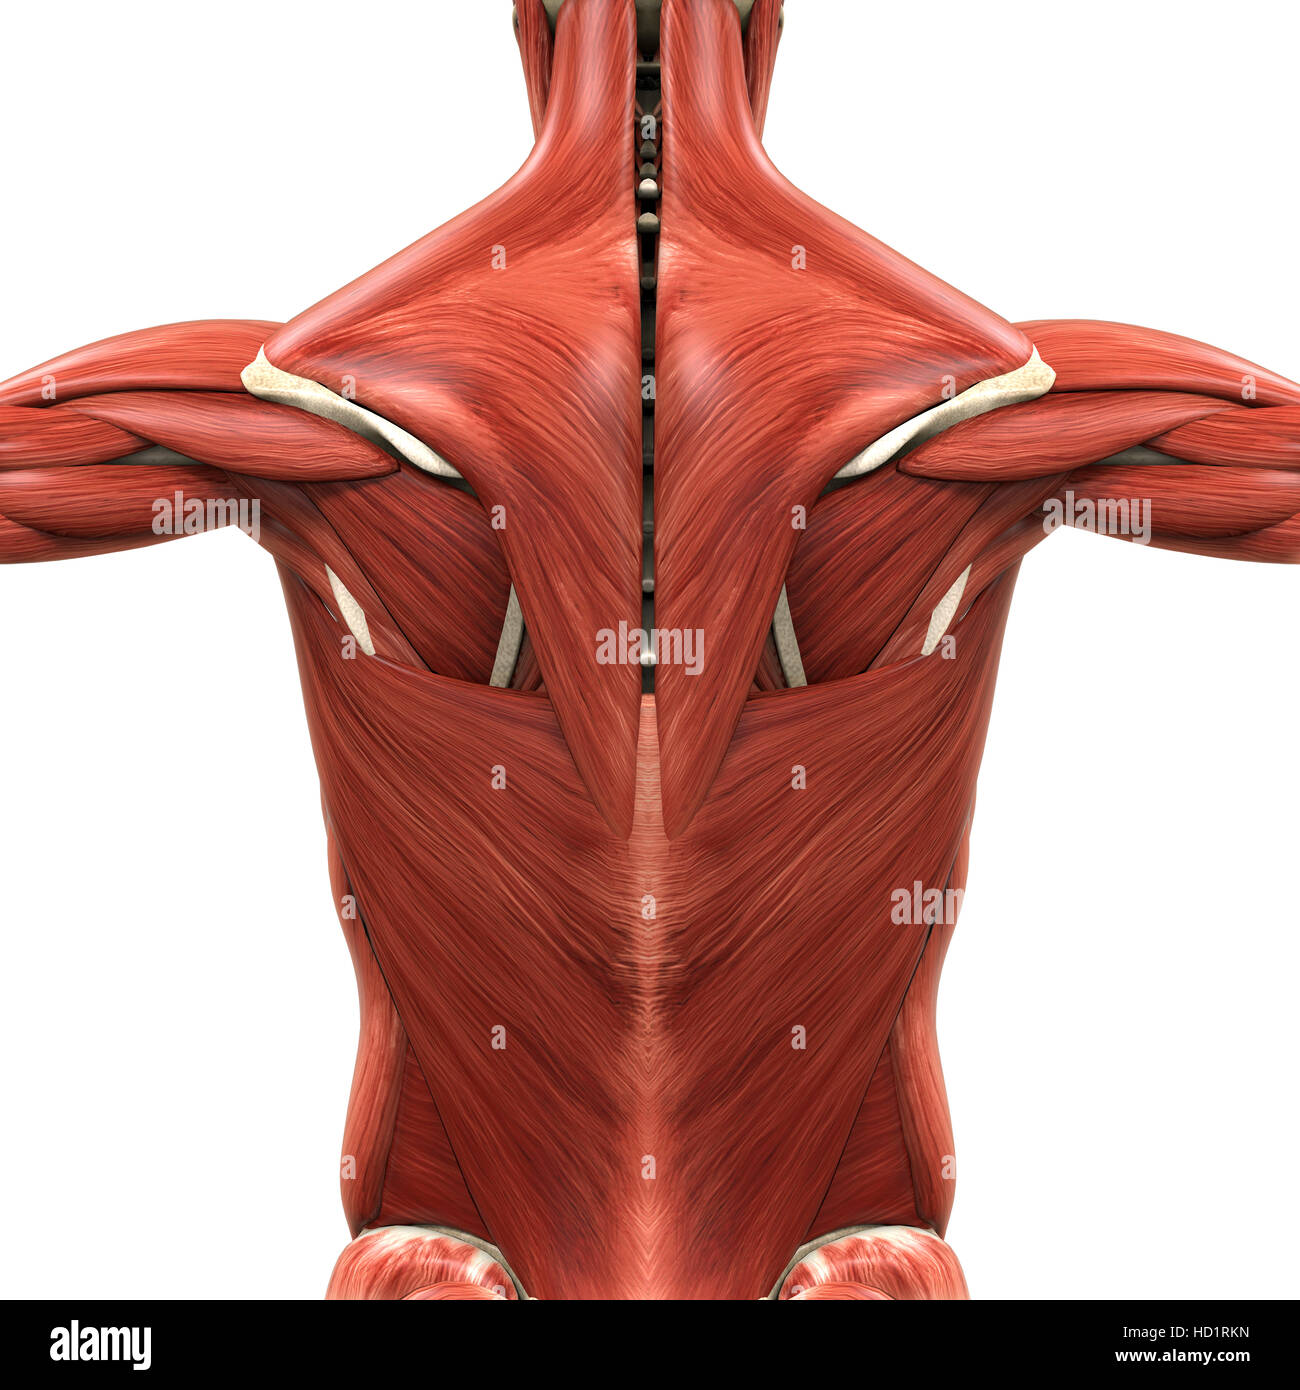 Muscular Anatomy of the Back Stock Photo: 128503641 - Alamy